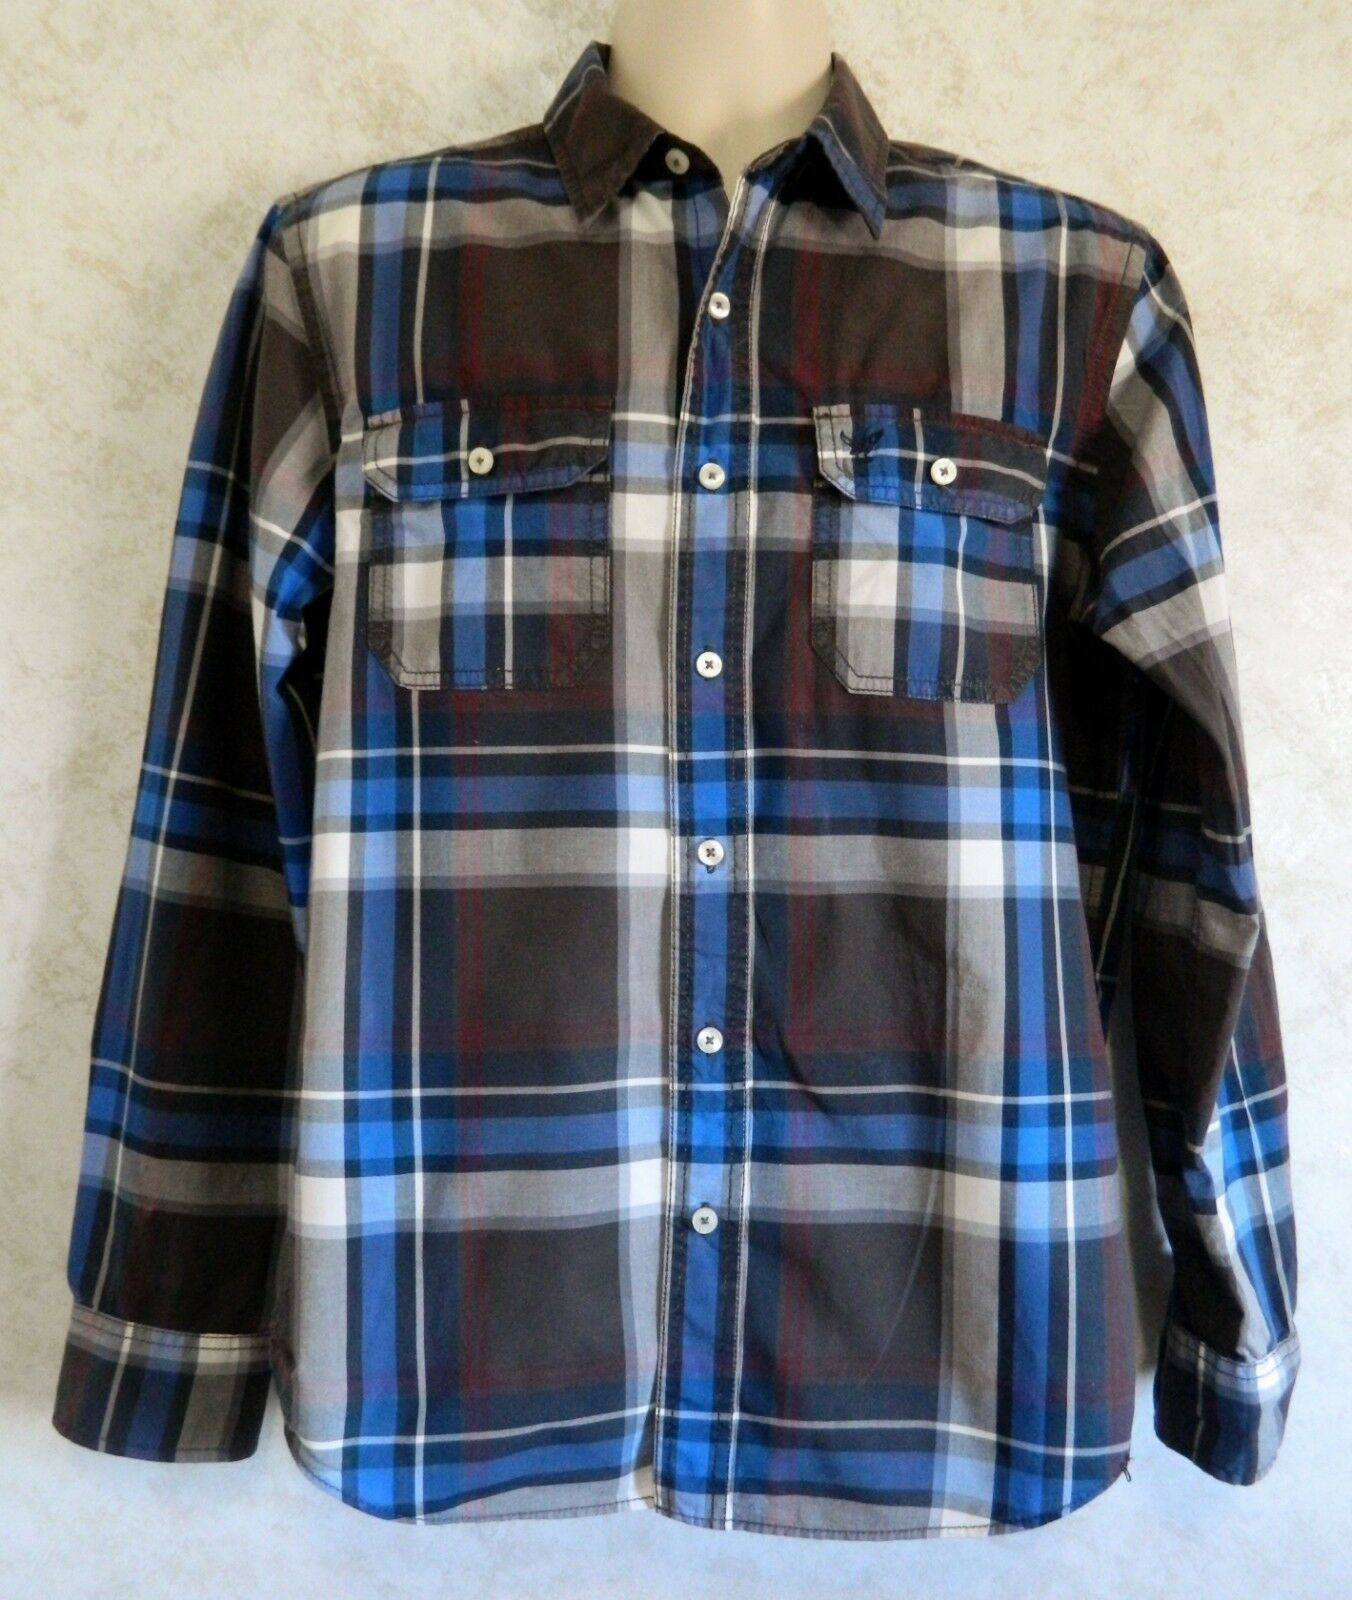 195f8f84cb Men s American Eagle Outfitters Blue Black Plaid Button Up Shirt Size Medium  -  19.68